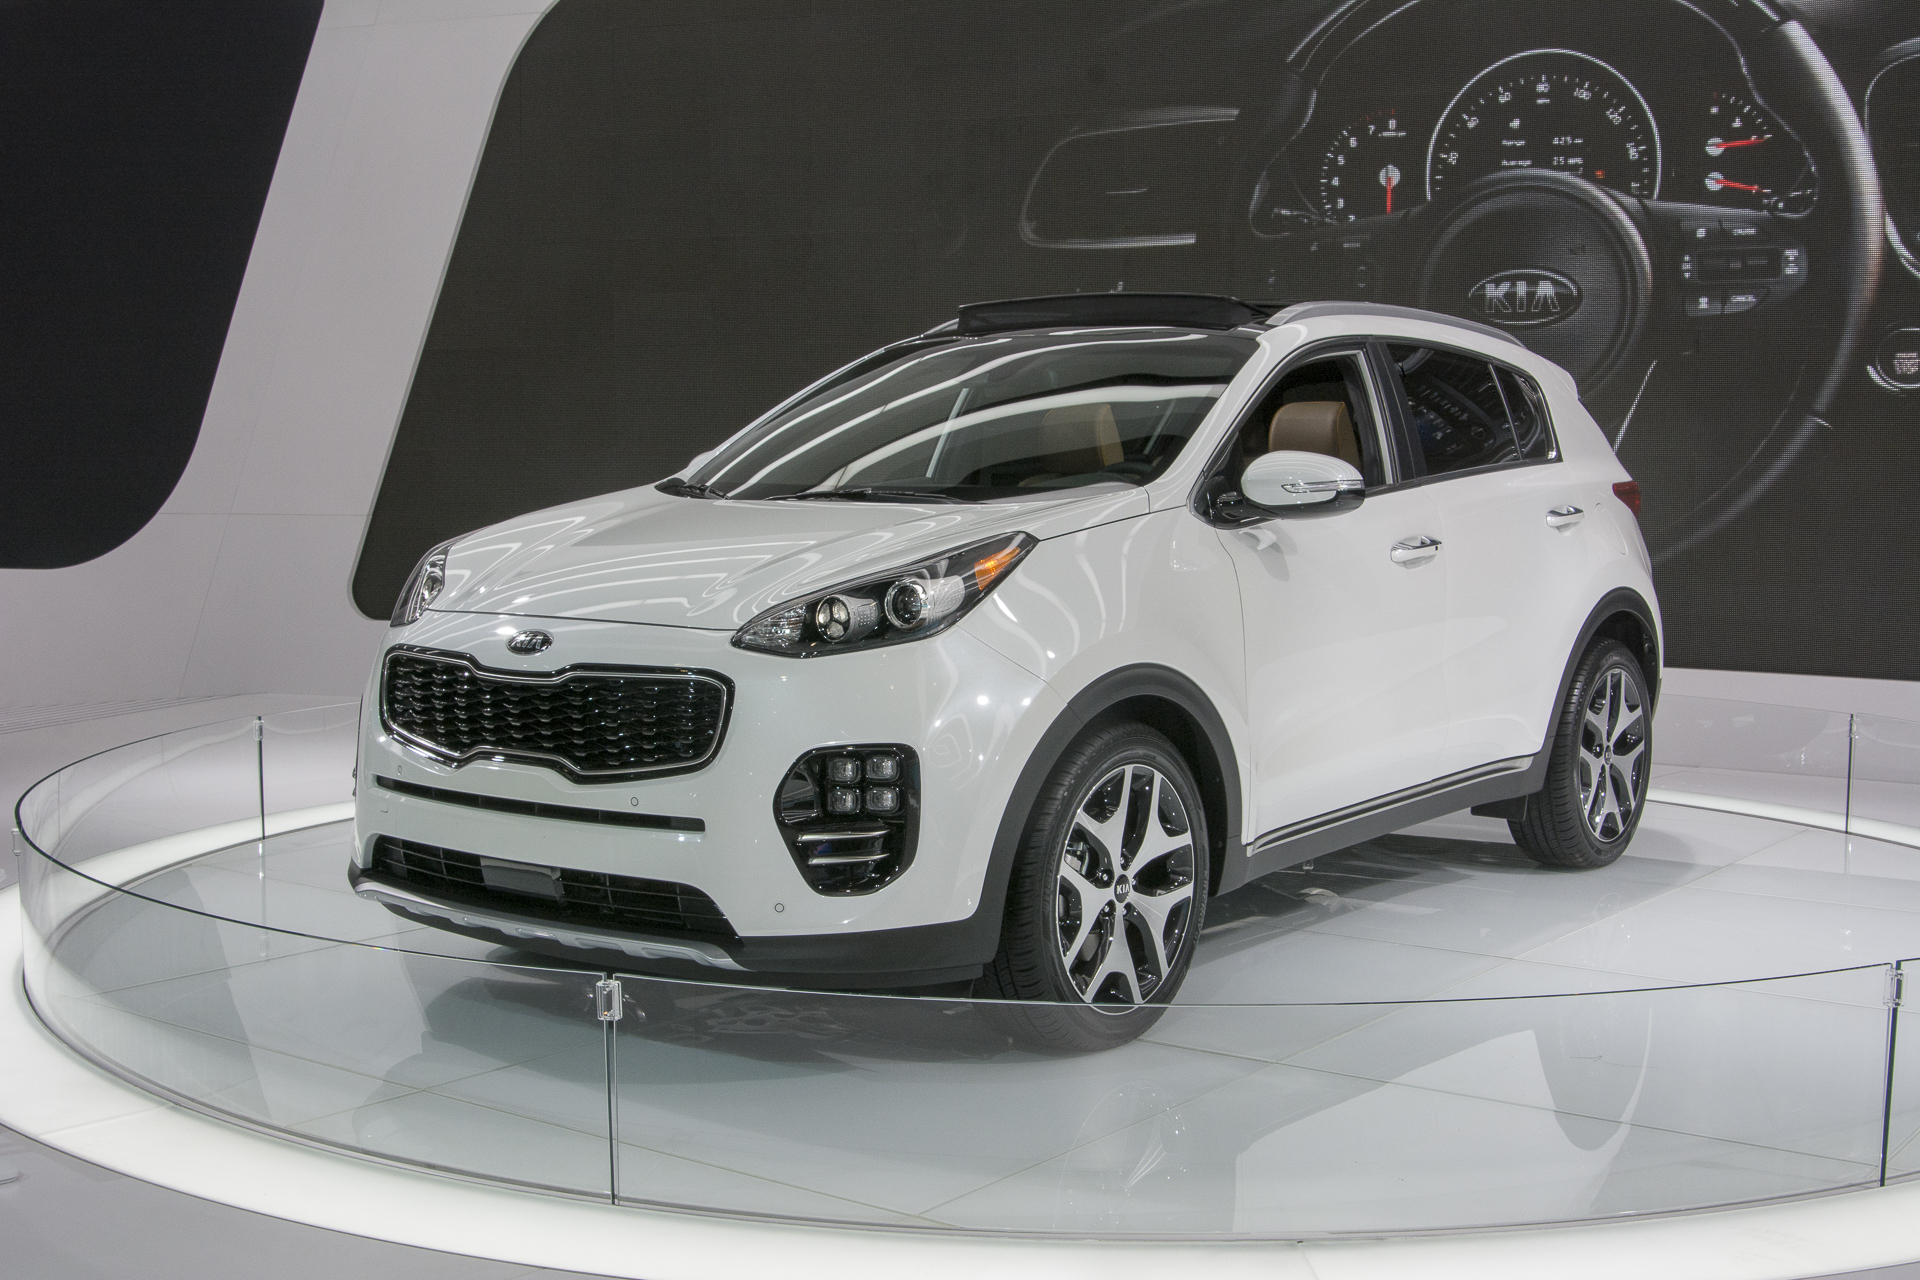 hight resolution of sportage kia 2012 kia sportage reviews and rating motor trend 2017 rh militaryhummers info curt